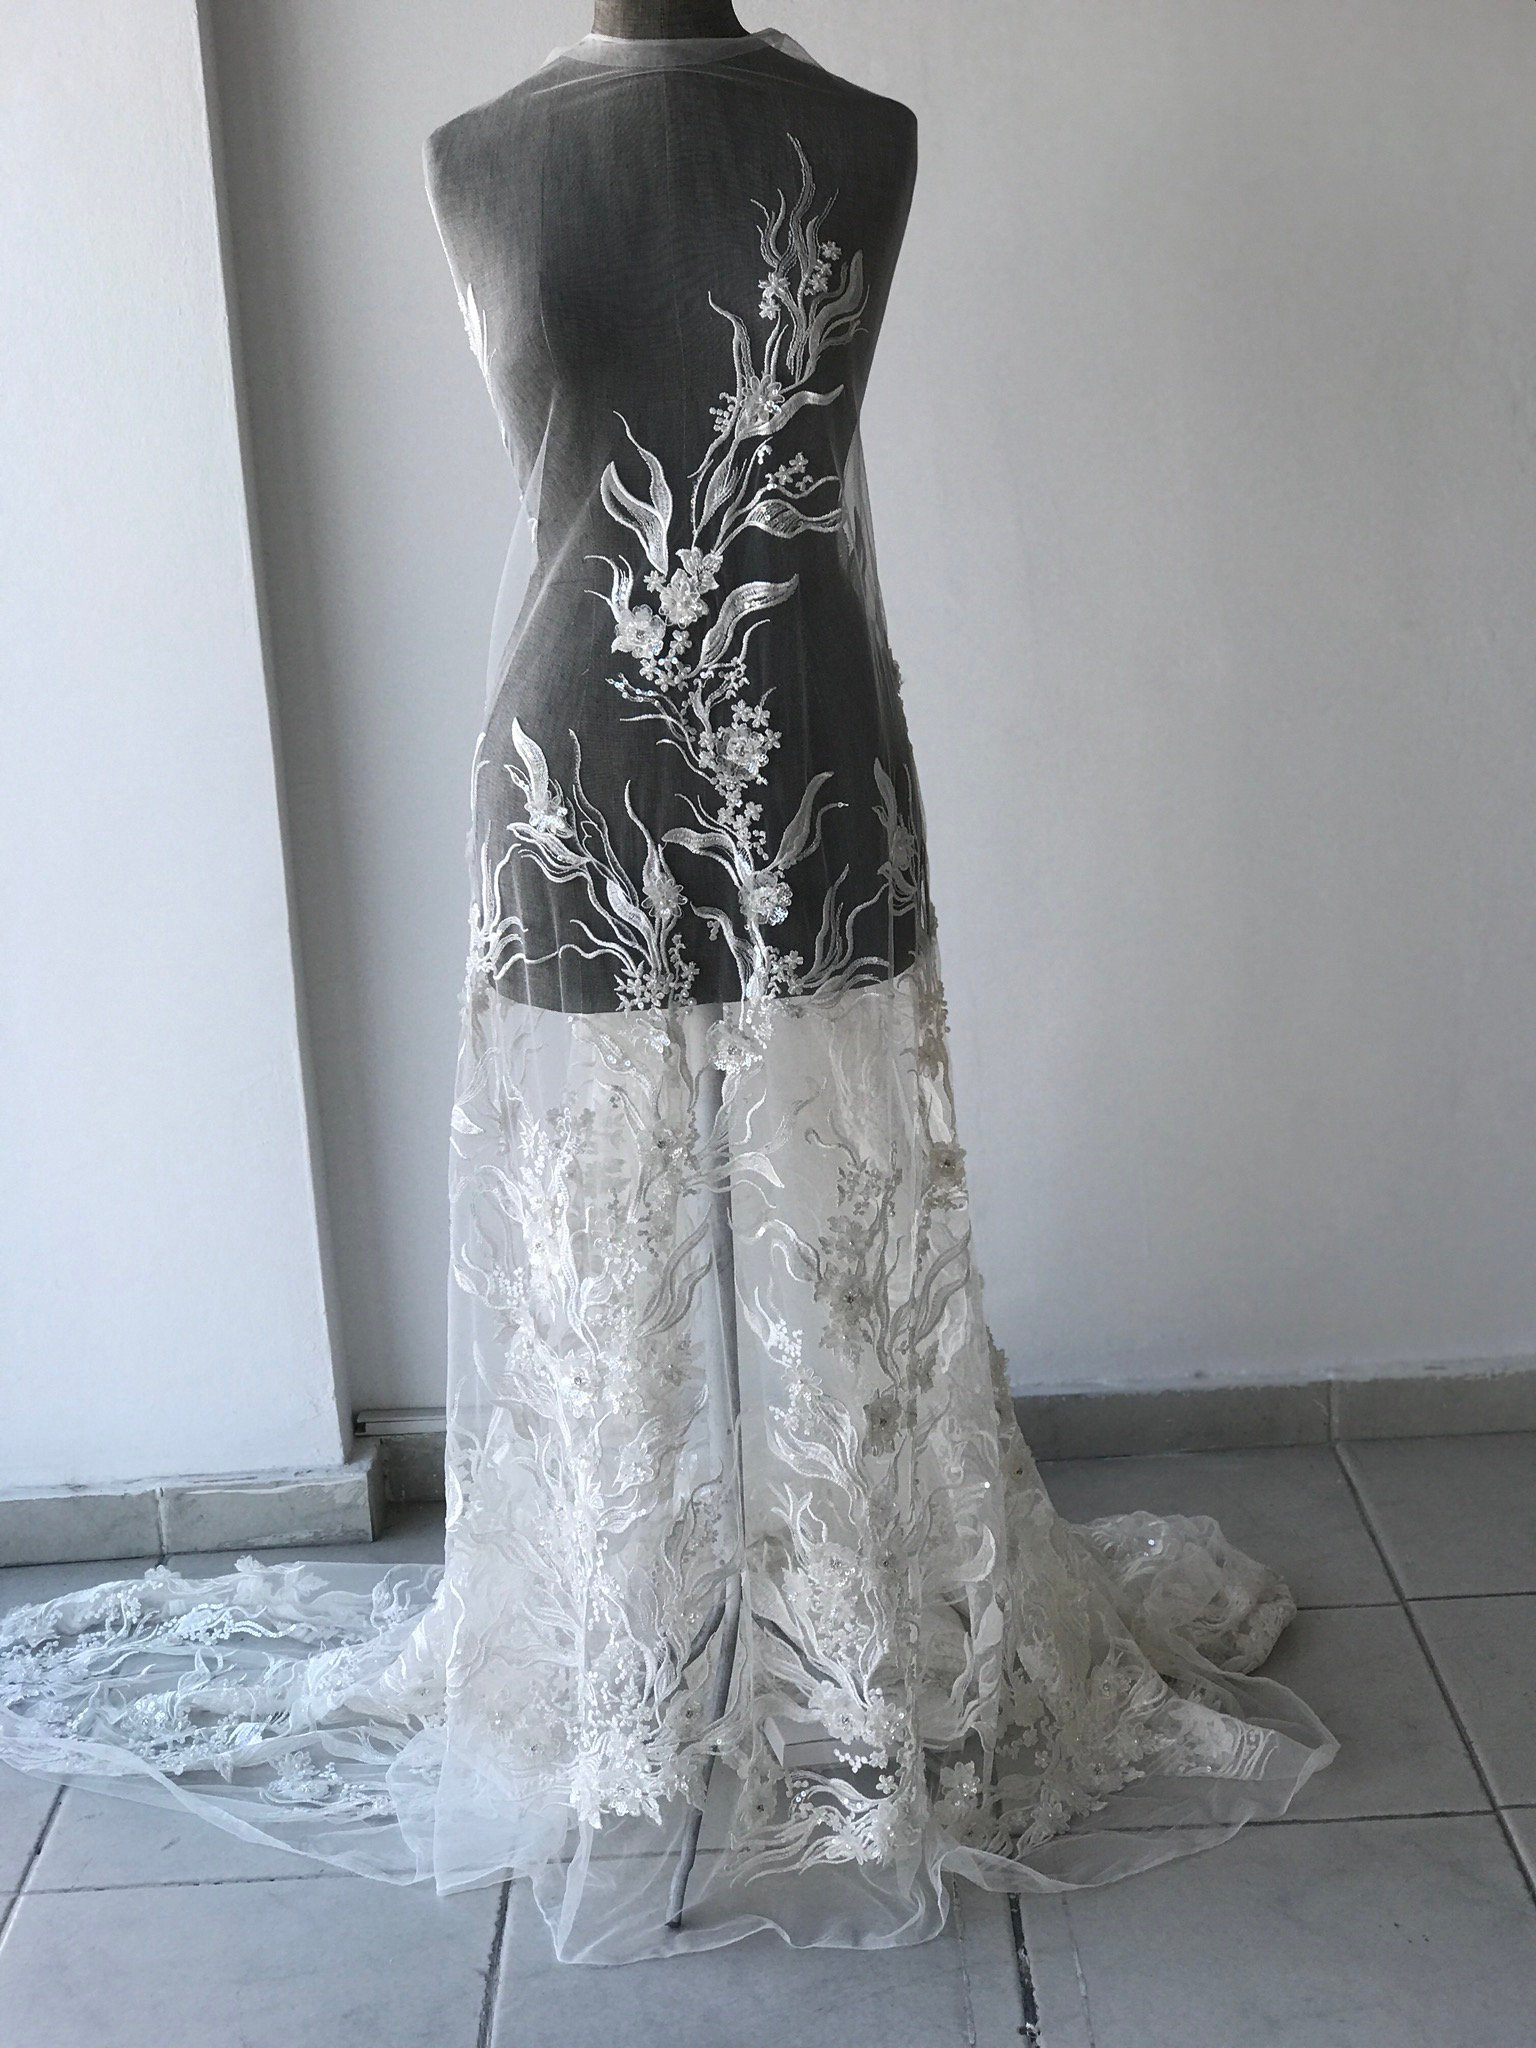 Off White Light Ivory corded  bridal lace fabric embroidered with sequins stones pearls 3D flowers wedding dress lace fabric